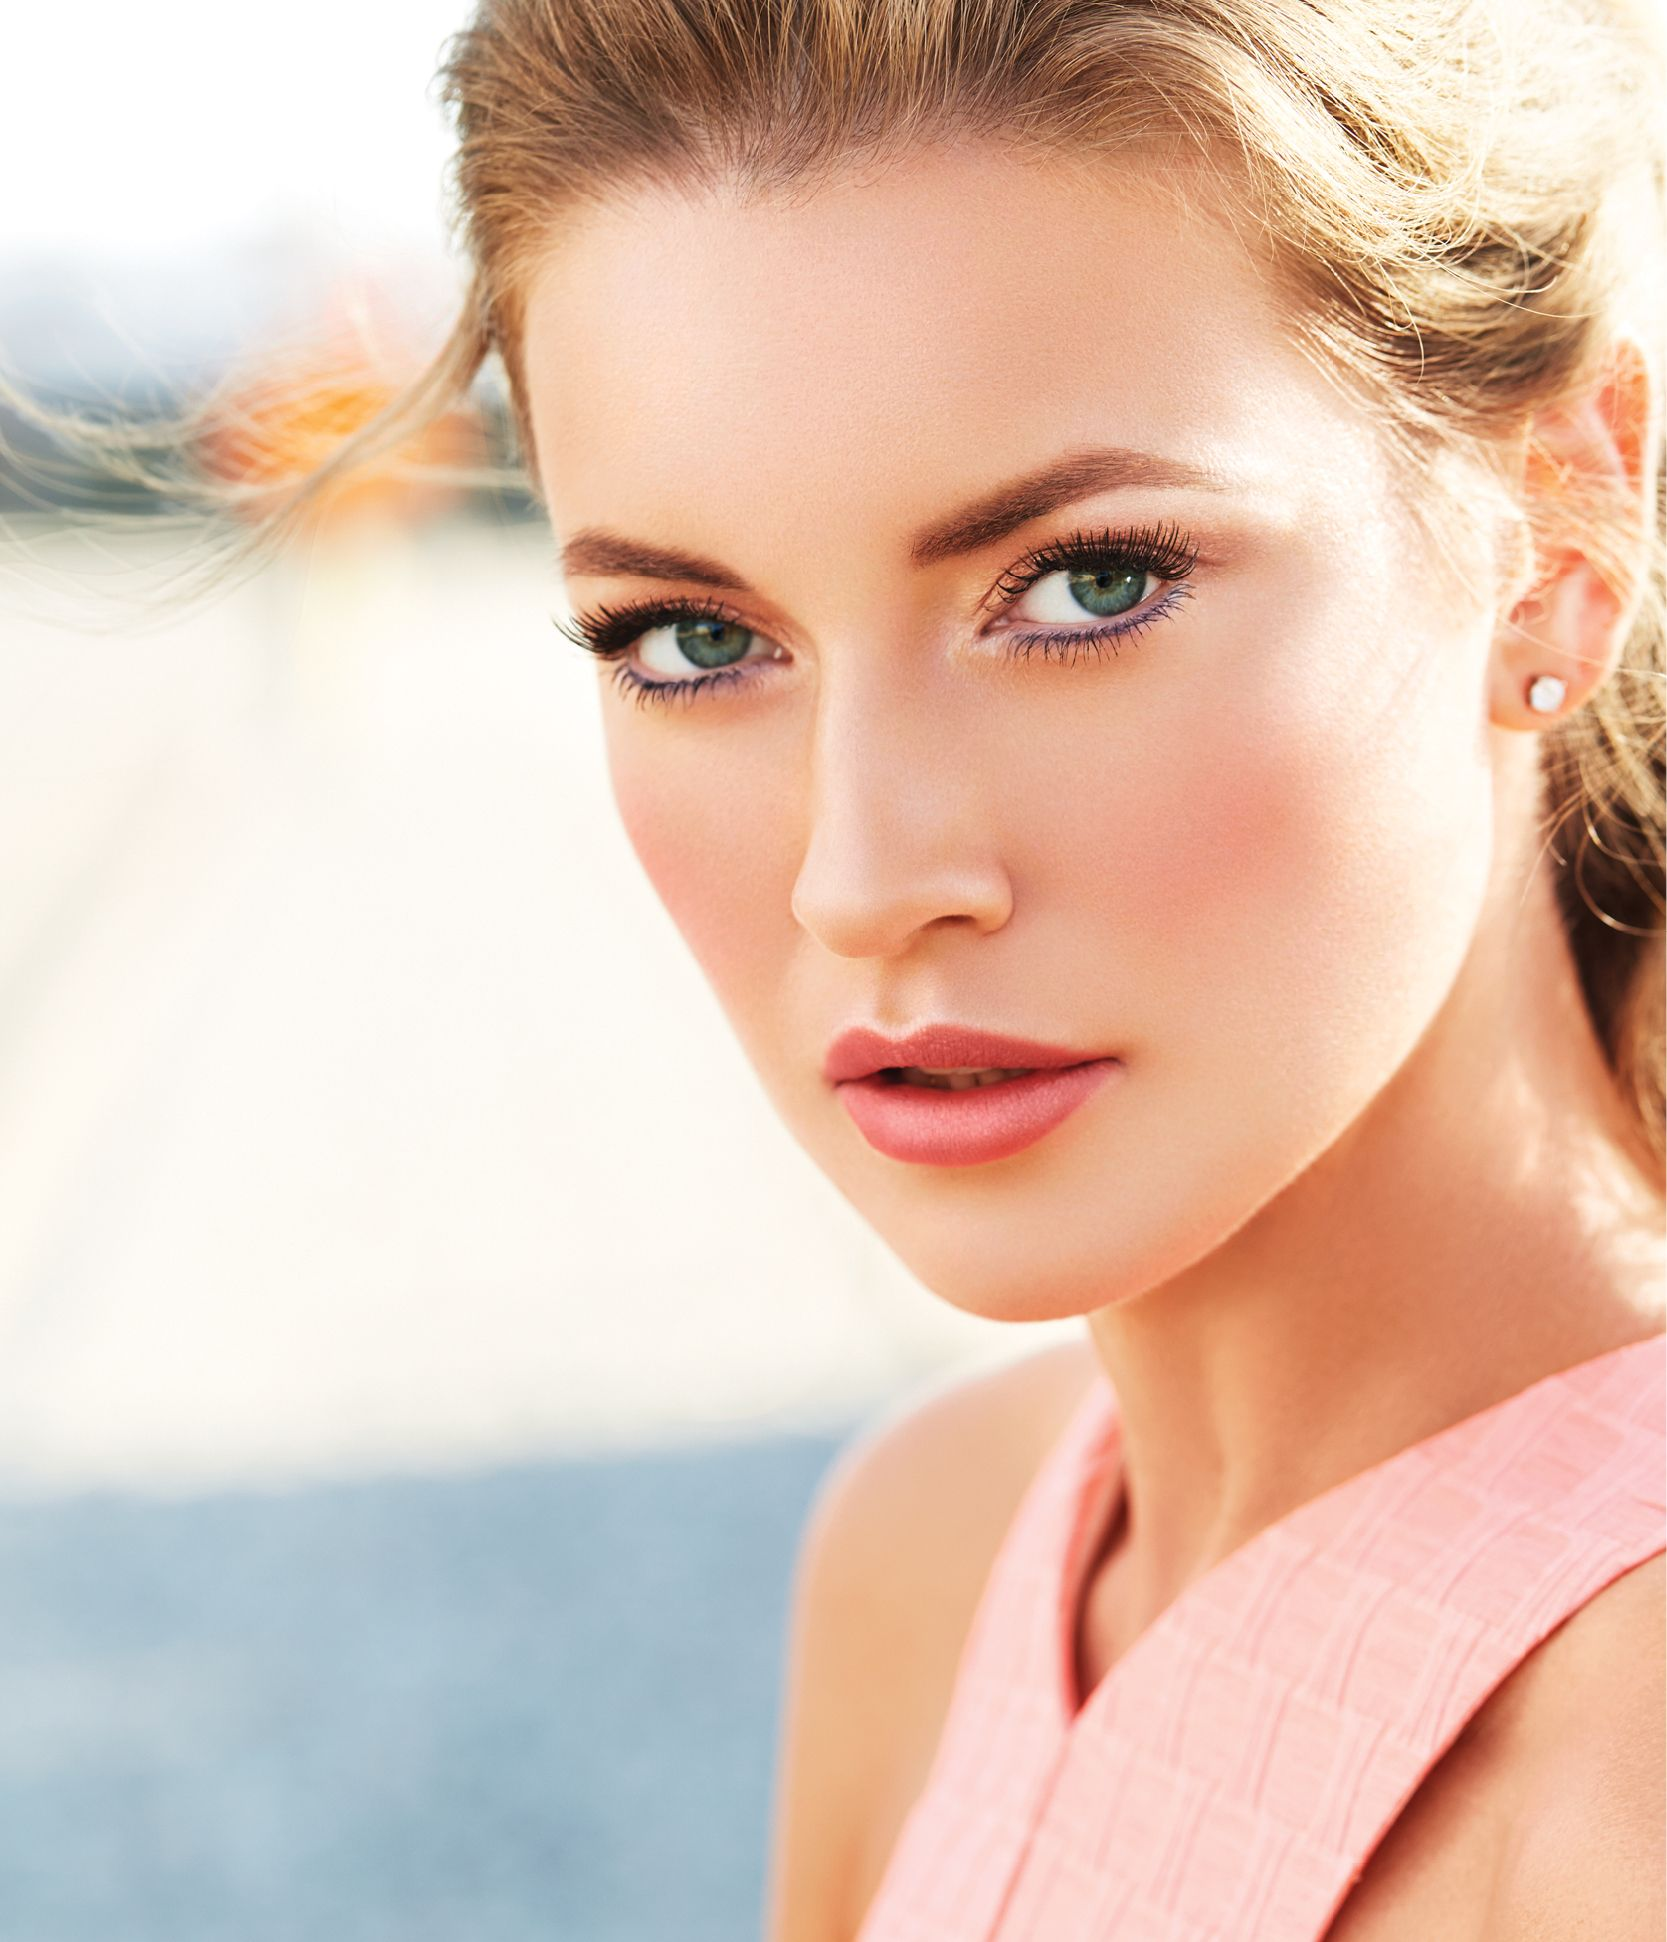 Get this look at Merle Norman Cosmetics March 1st! Color